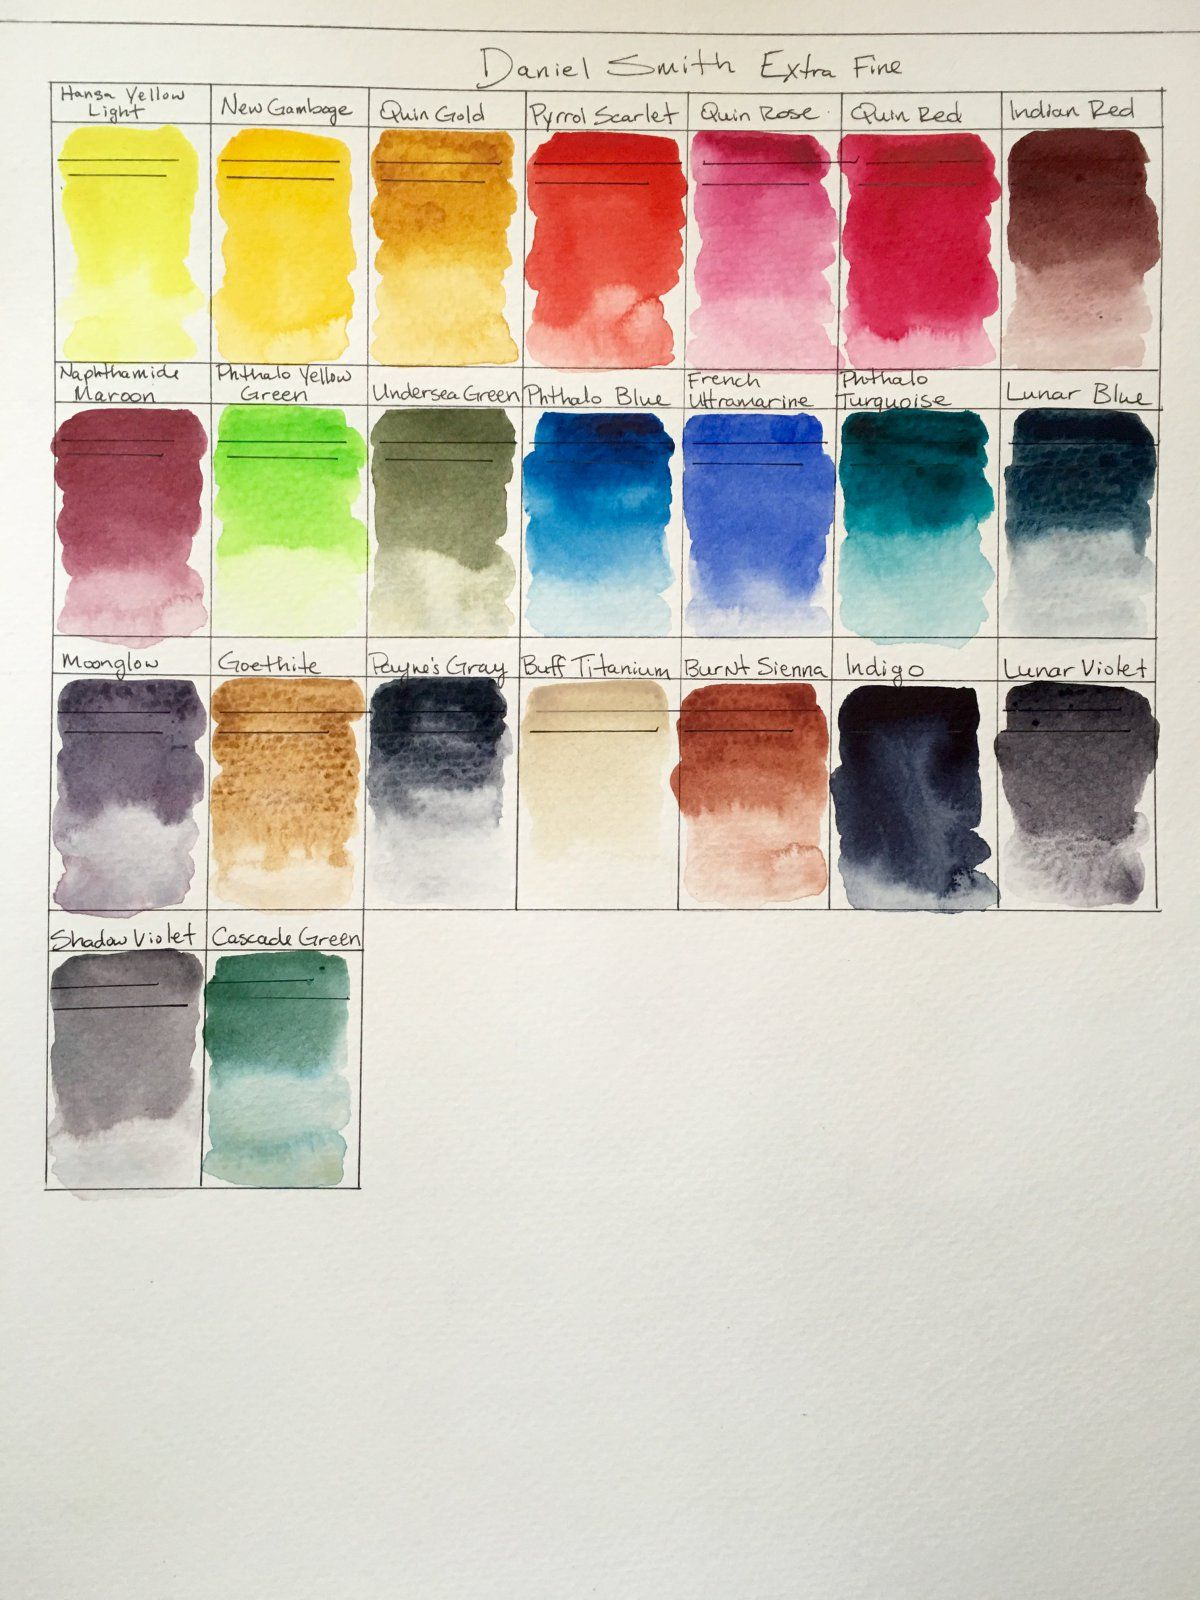 Doodlewash Review Daniel Smith Extra Fine Watercolors Part I